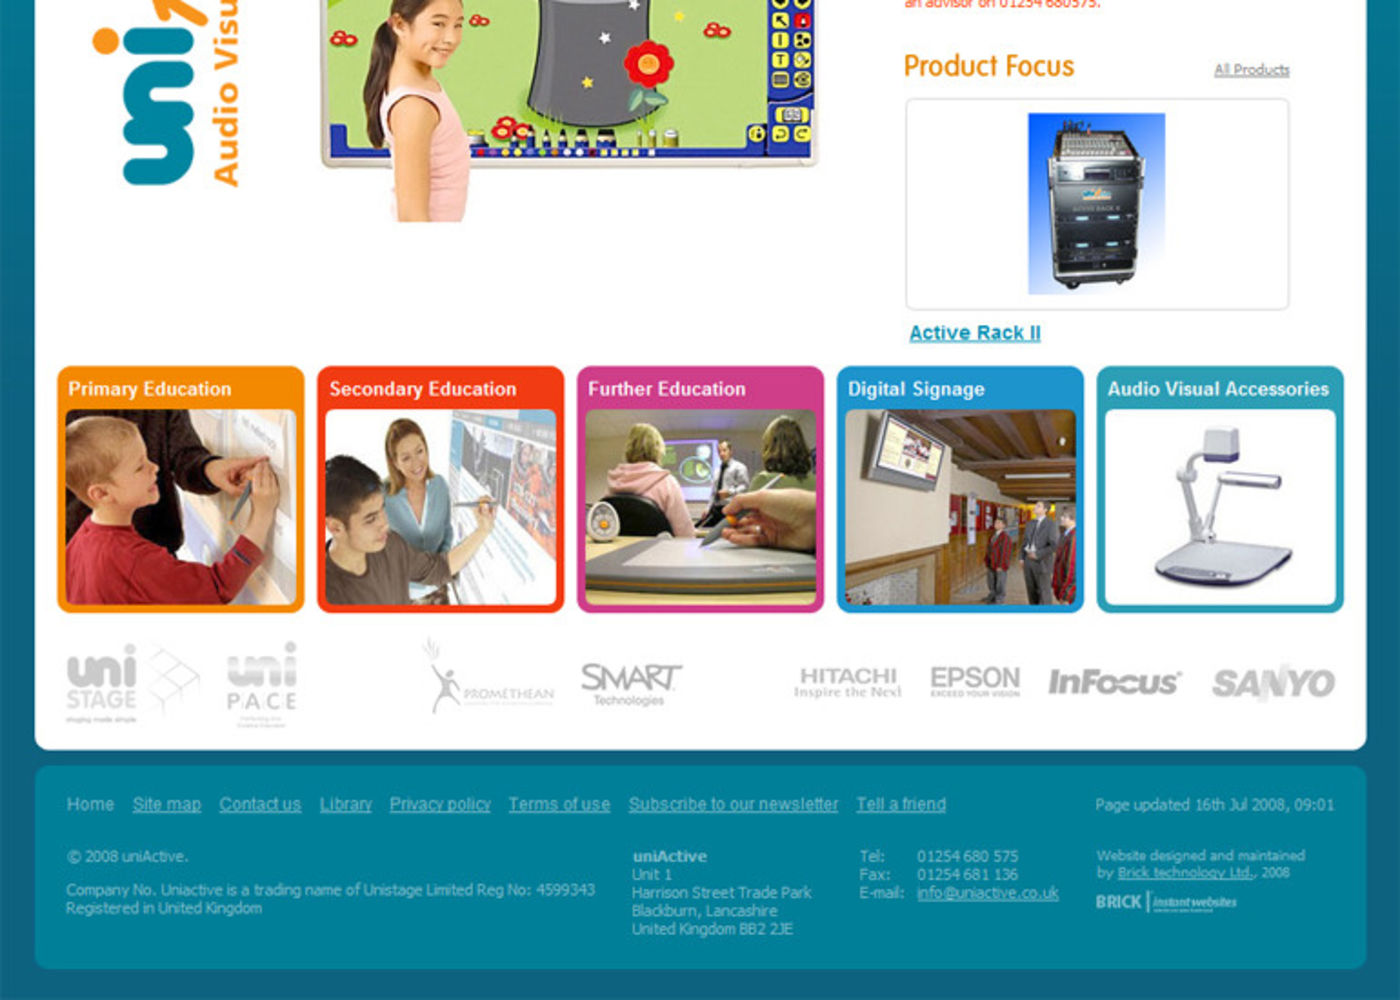 uniActive Homepage footer - uniActive